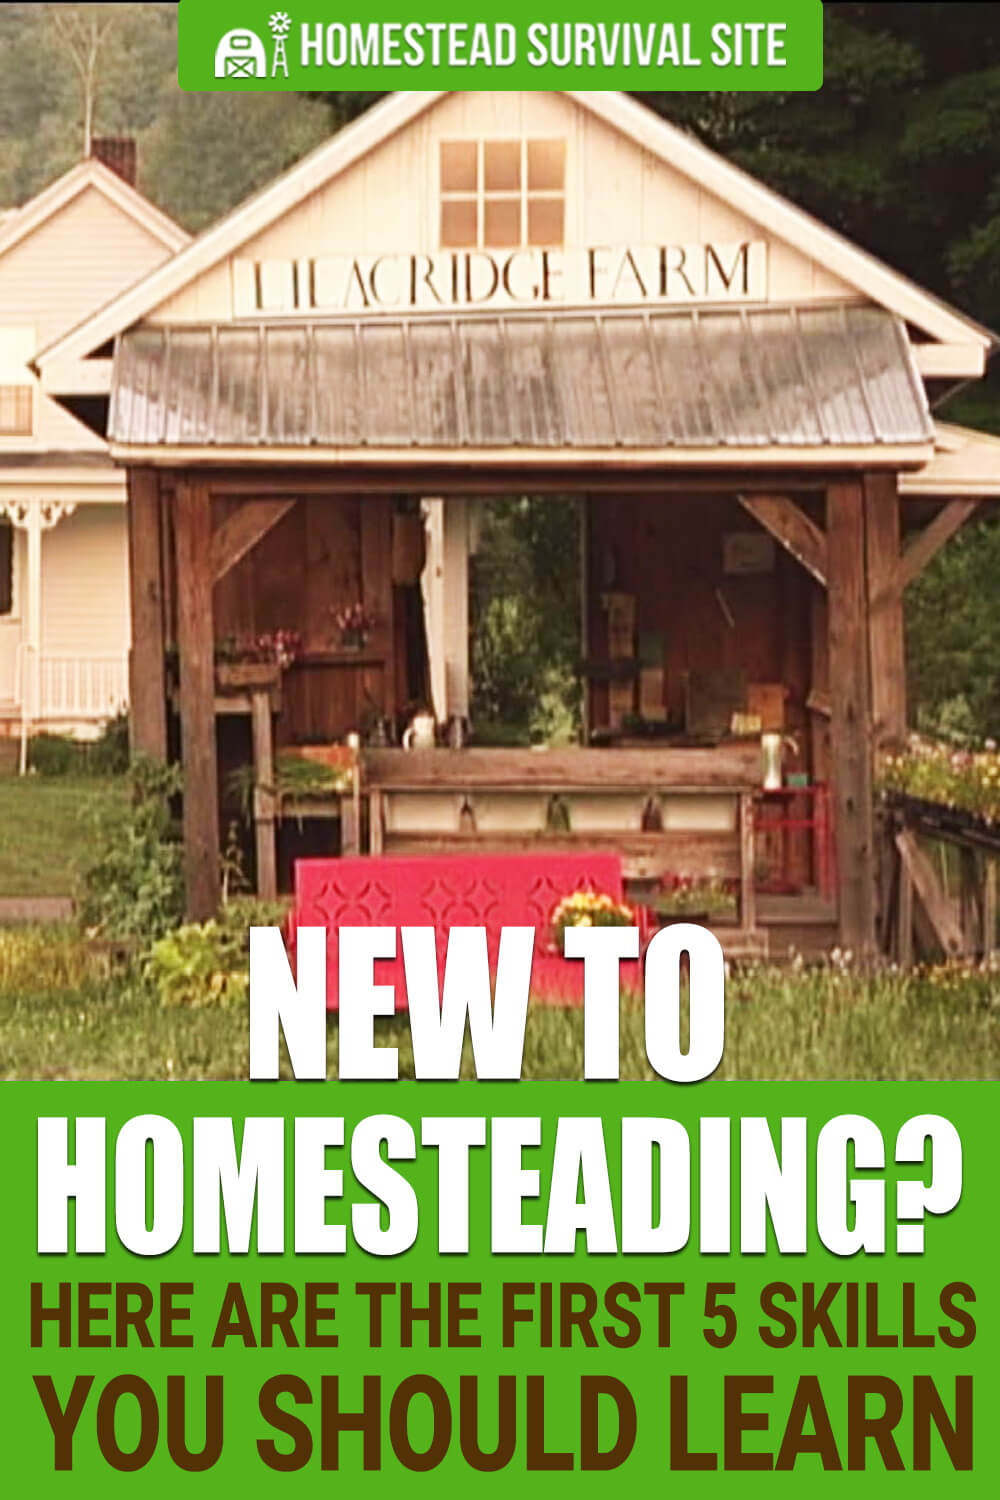 New to Homesteading? Here are the First 5 Skills You Should Learn